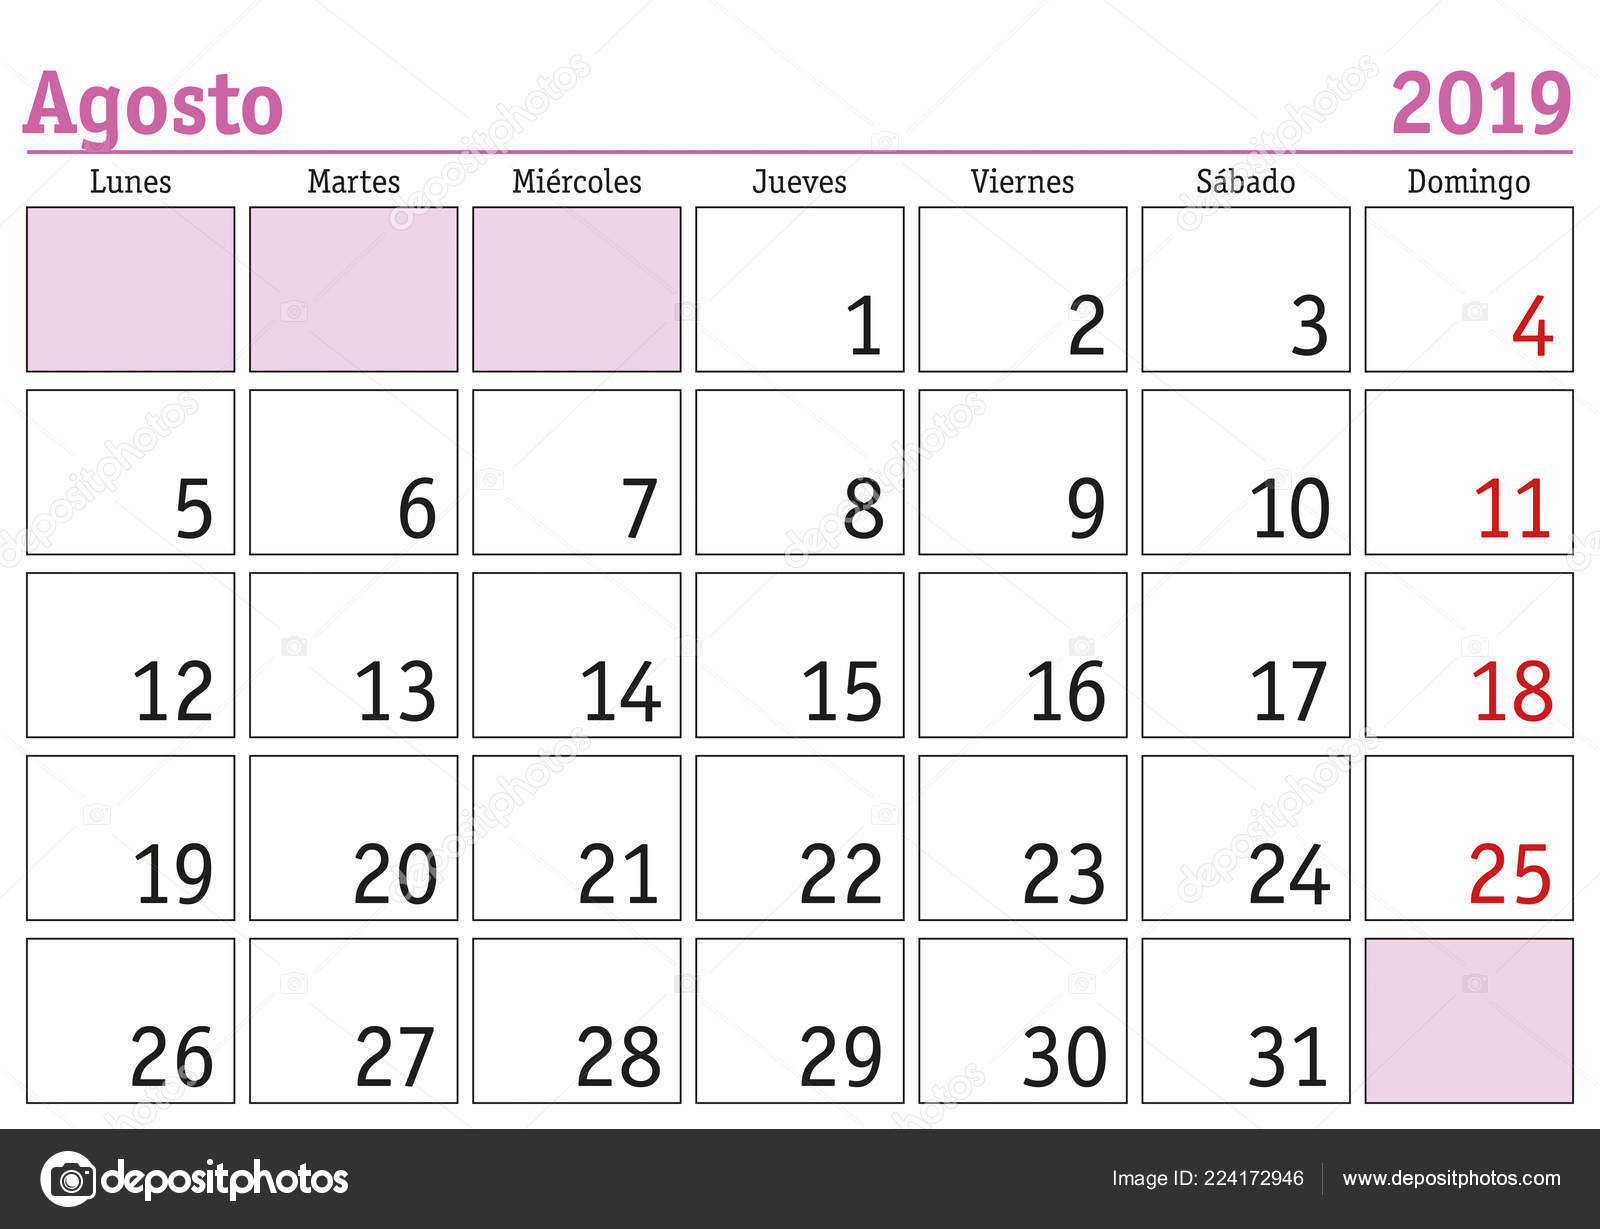 Calendario 2019 Mes A Mes.August Month Year 2019 Wall Calendar Spanish Agosto 2019 Calendario